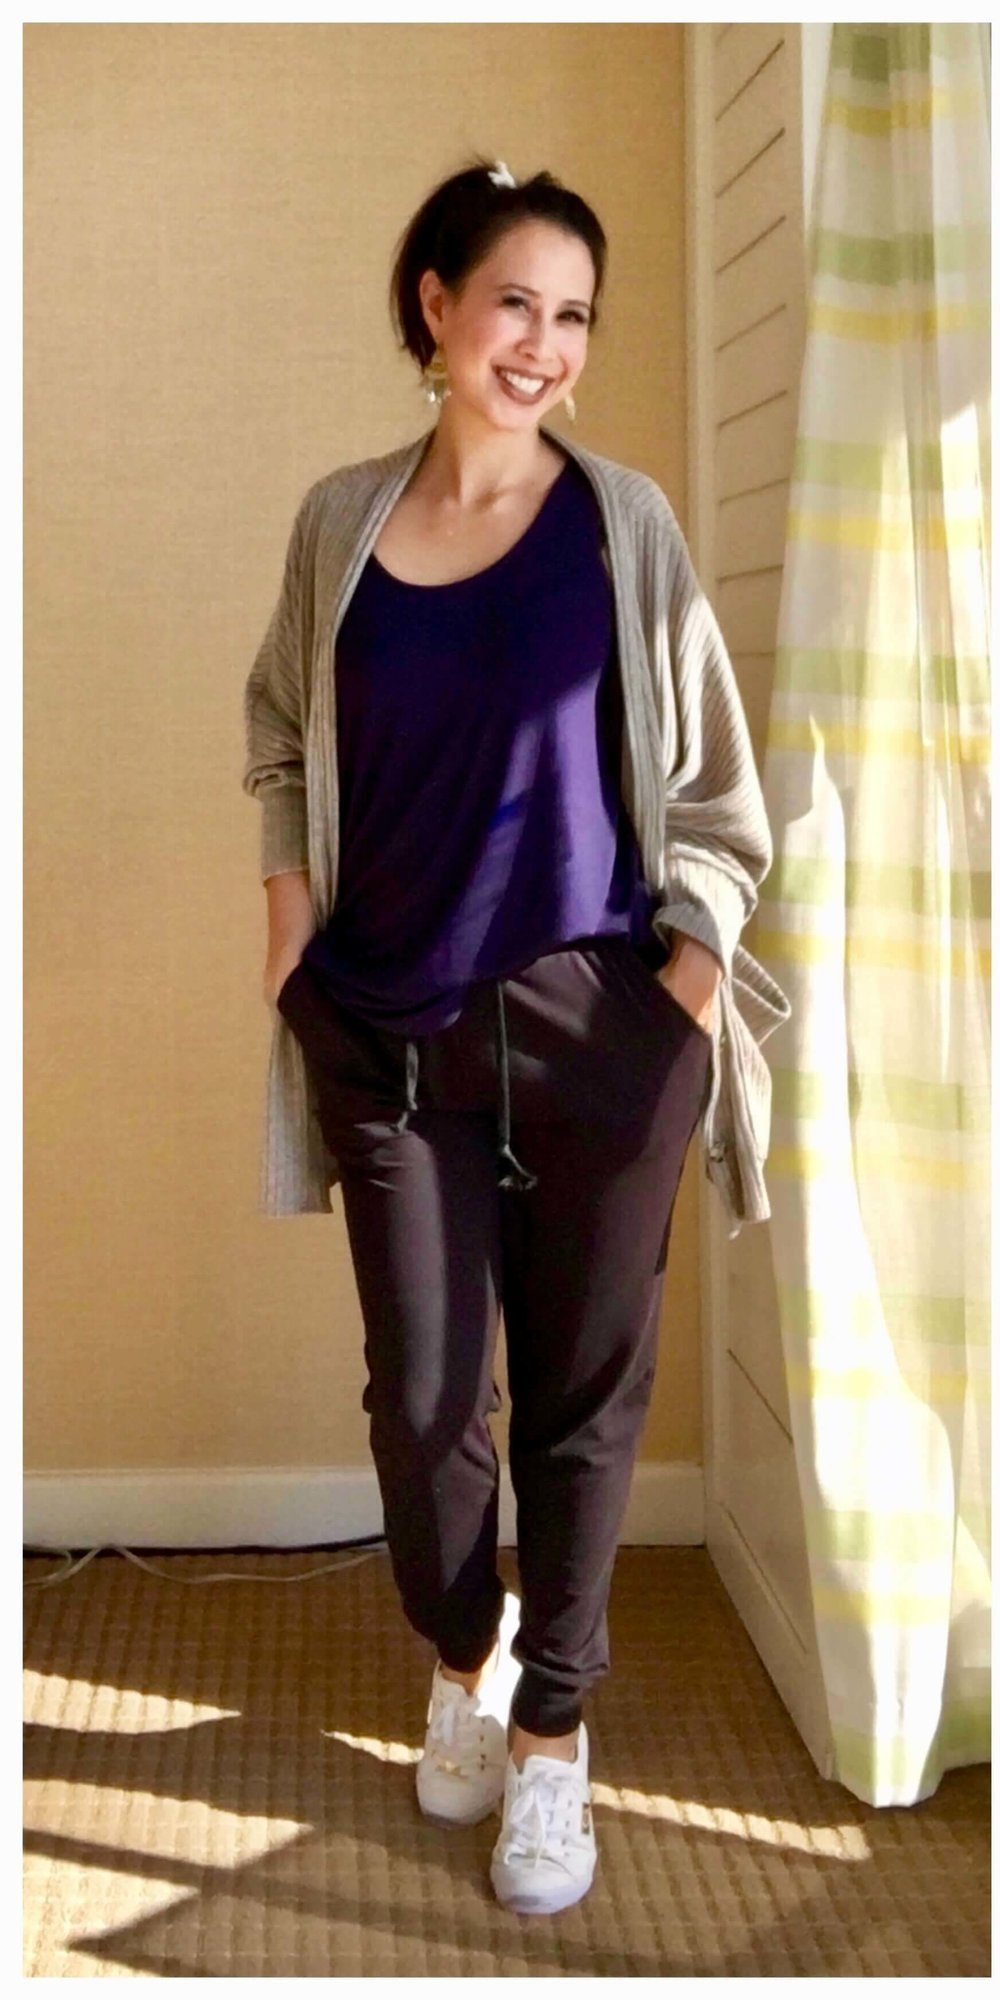 Credit: Rochelle in  Frumpy Fighters   Joggers + Color Tank + Cardigan + Sneakers + Statement Earrings  Check out Rochelle's website  here !